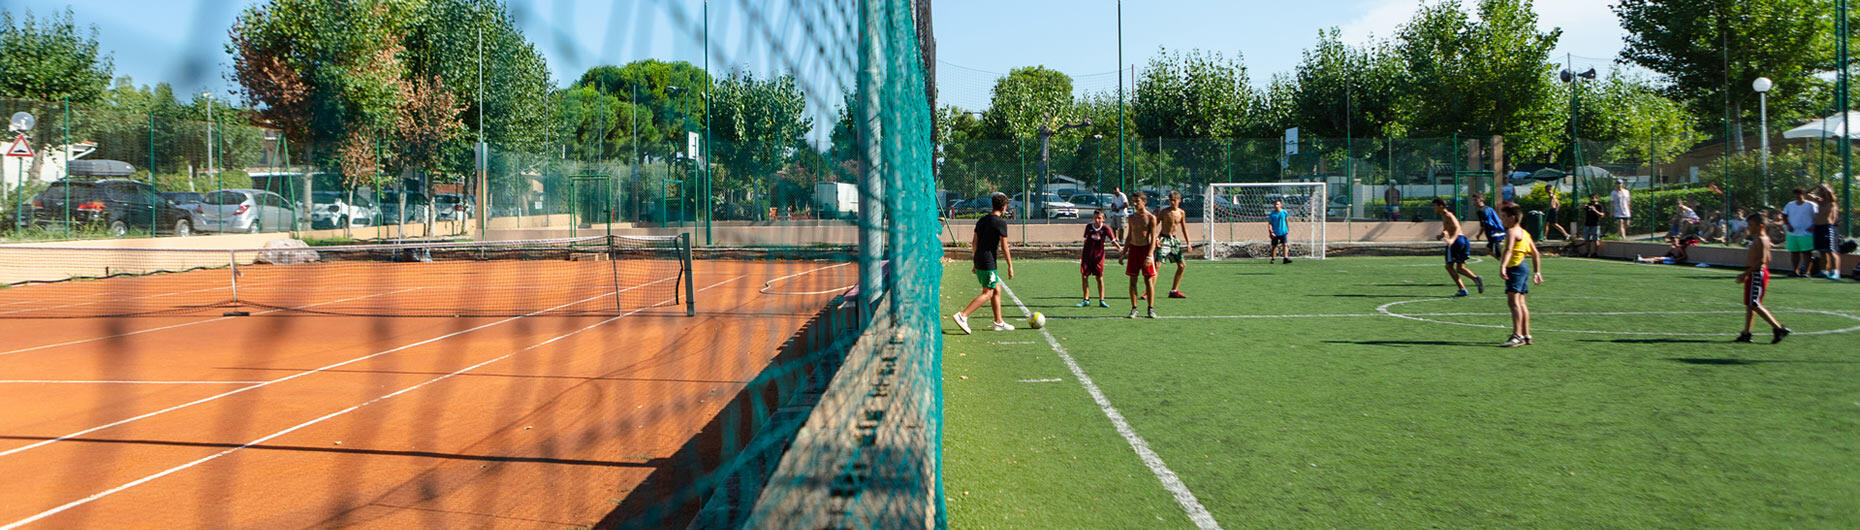 vacanzespinnaker en sports-active-holiday-marche 005